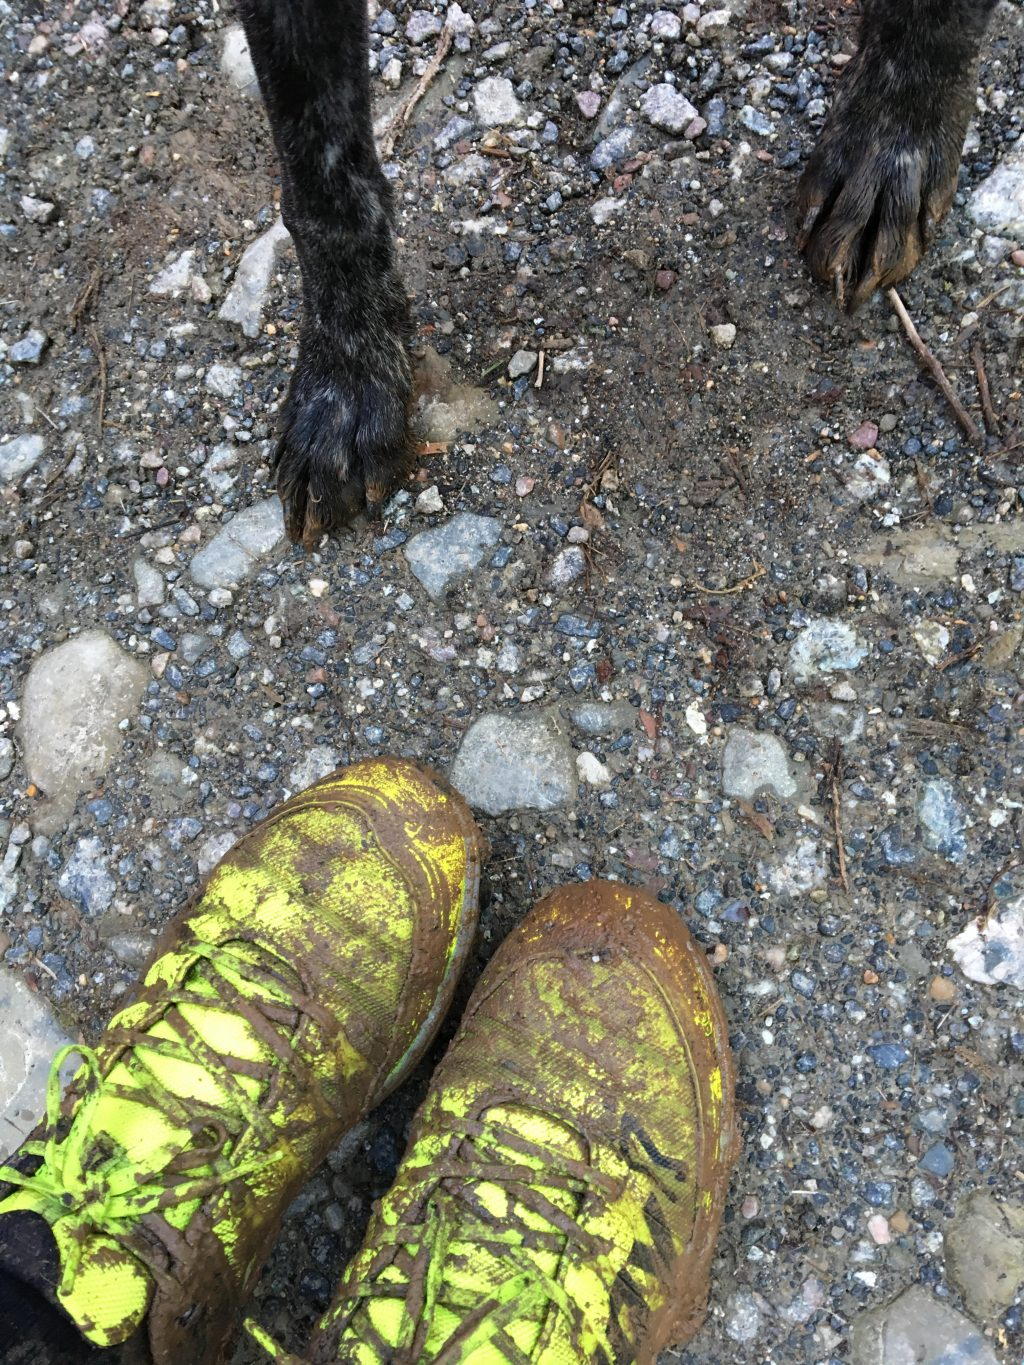 Inov8 Mud Claws & Muddy Paws after a Canicross Run